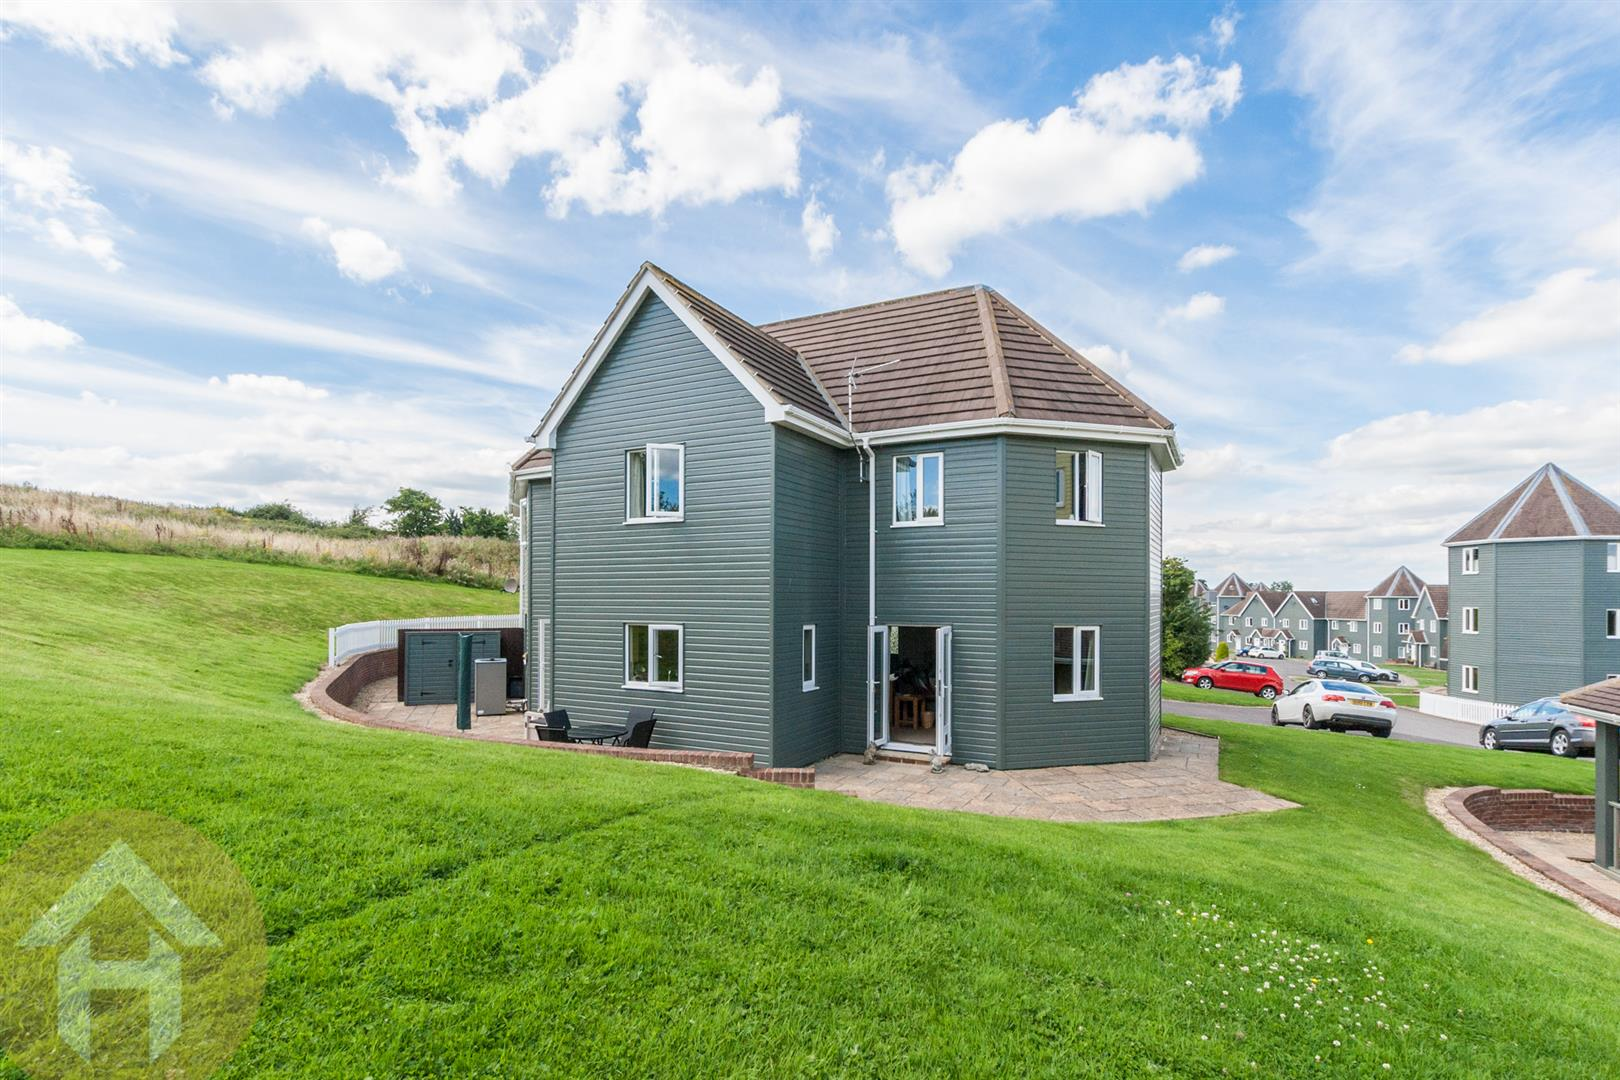 4 Bedrooms Semi Detached House for sale in The Wiltshire Leisure Village, Nr Royal Wootton Bassett